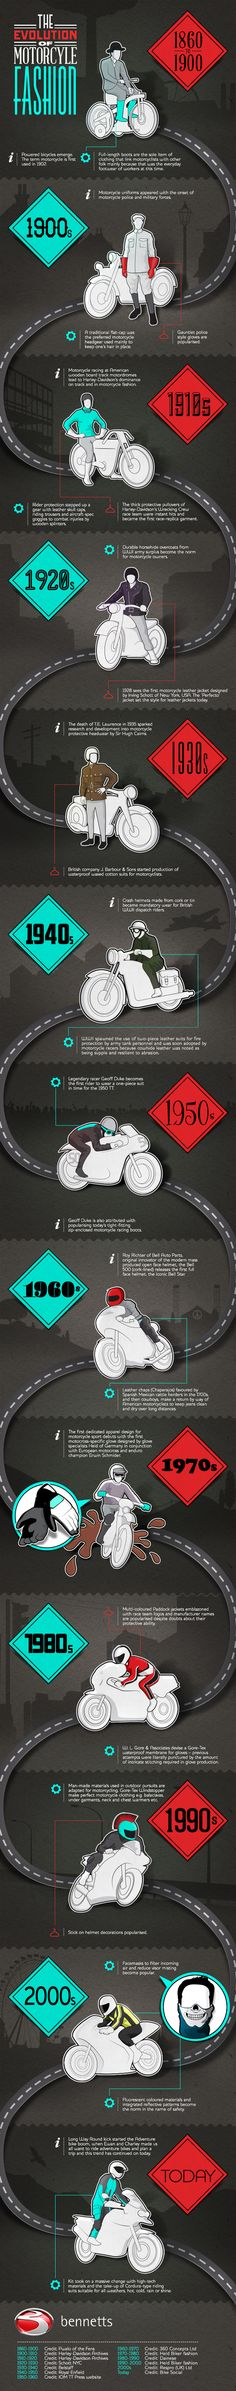 THE EVOLUTION OF MOTORCYCLE FASHION [INFOGRAPHIC] #MOTORCYCLE #INFOGRAPHIC